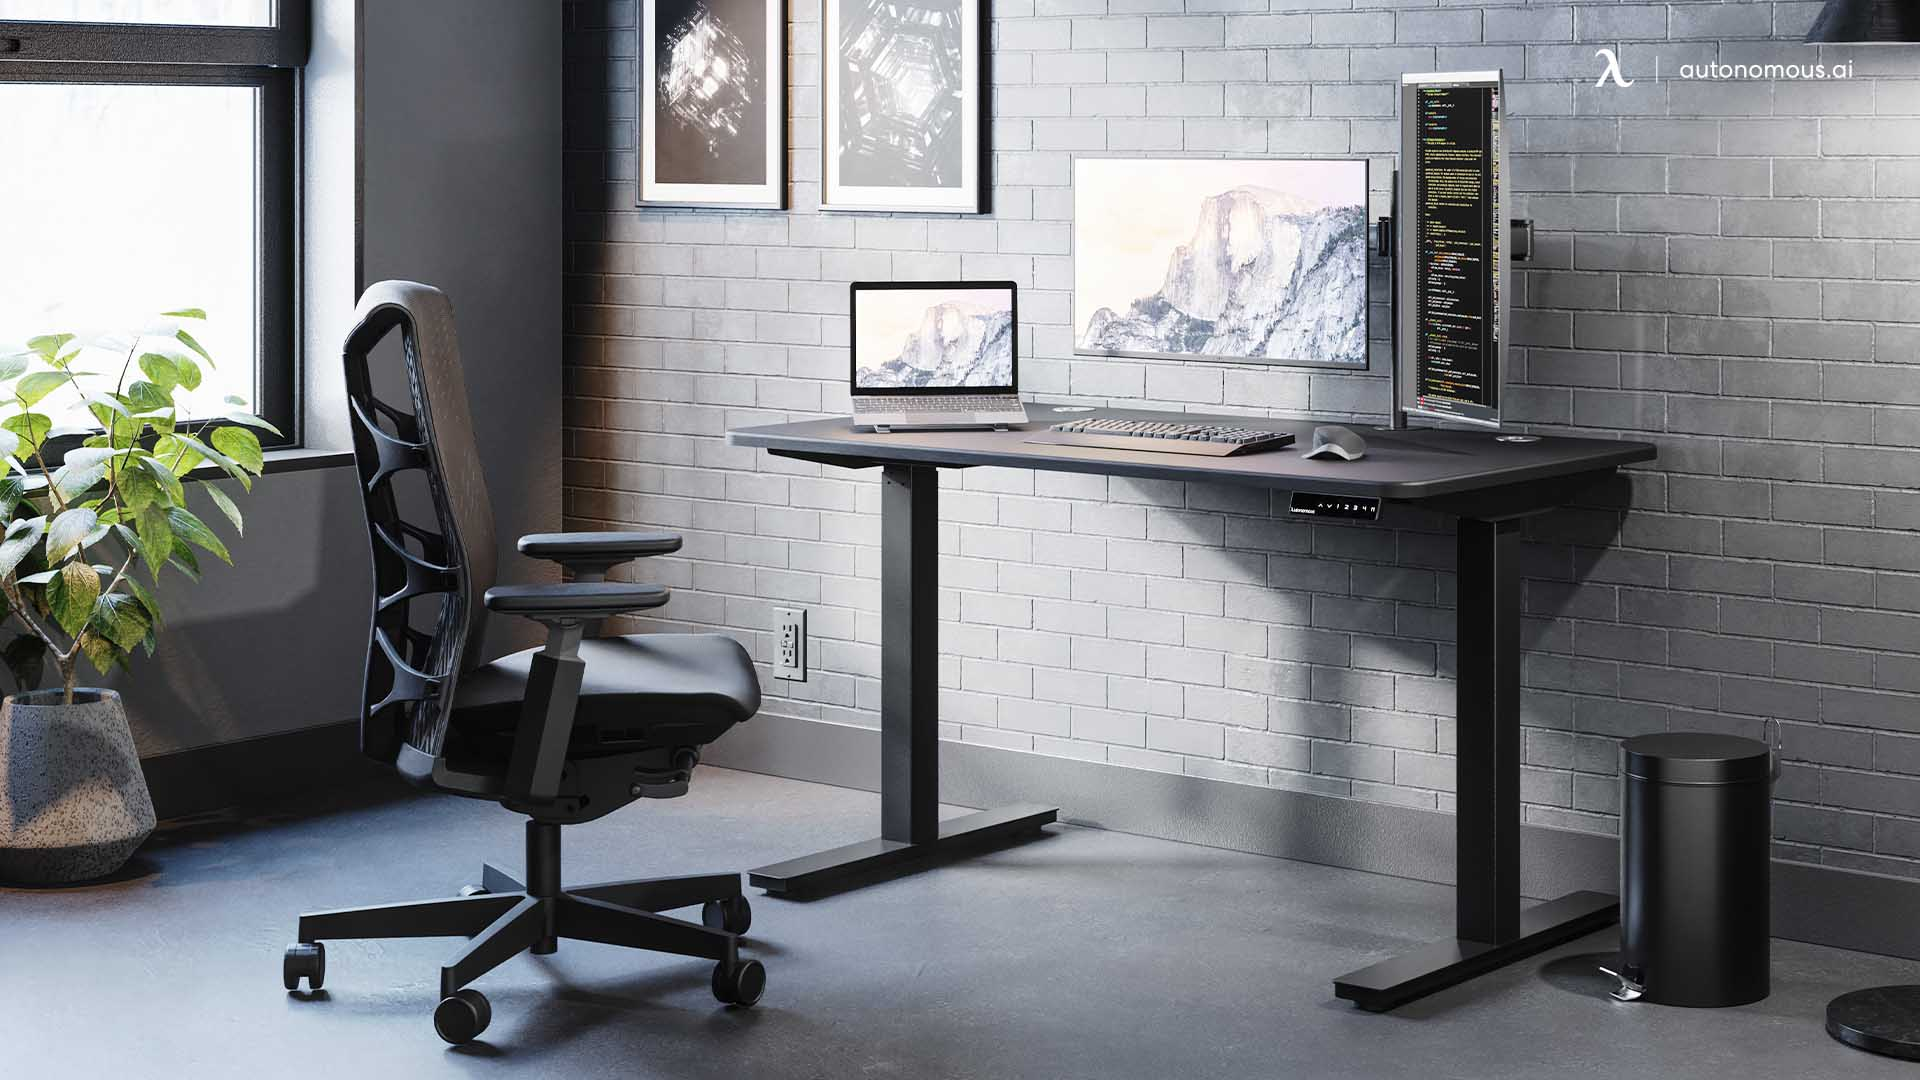 Why Should You Include a Modern All-Black Desk